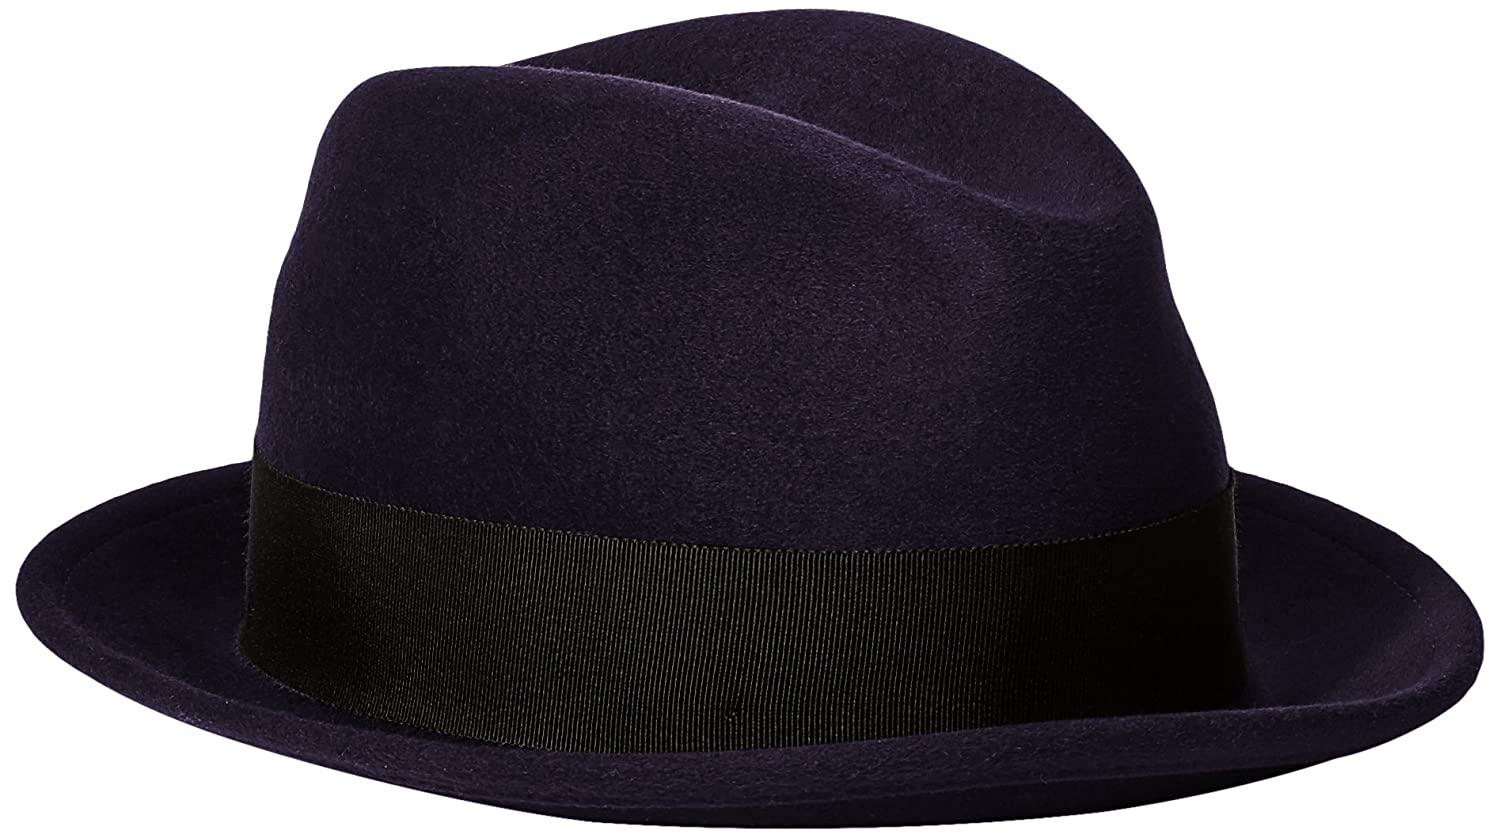 1950s Mens Hats | 50s Vintage Men's Hats Bailey of Hollywood Mens Riff $97.75 AT vintagedancer.com